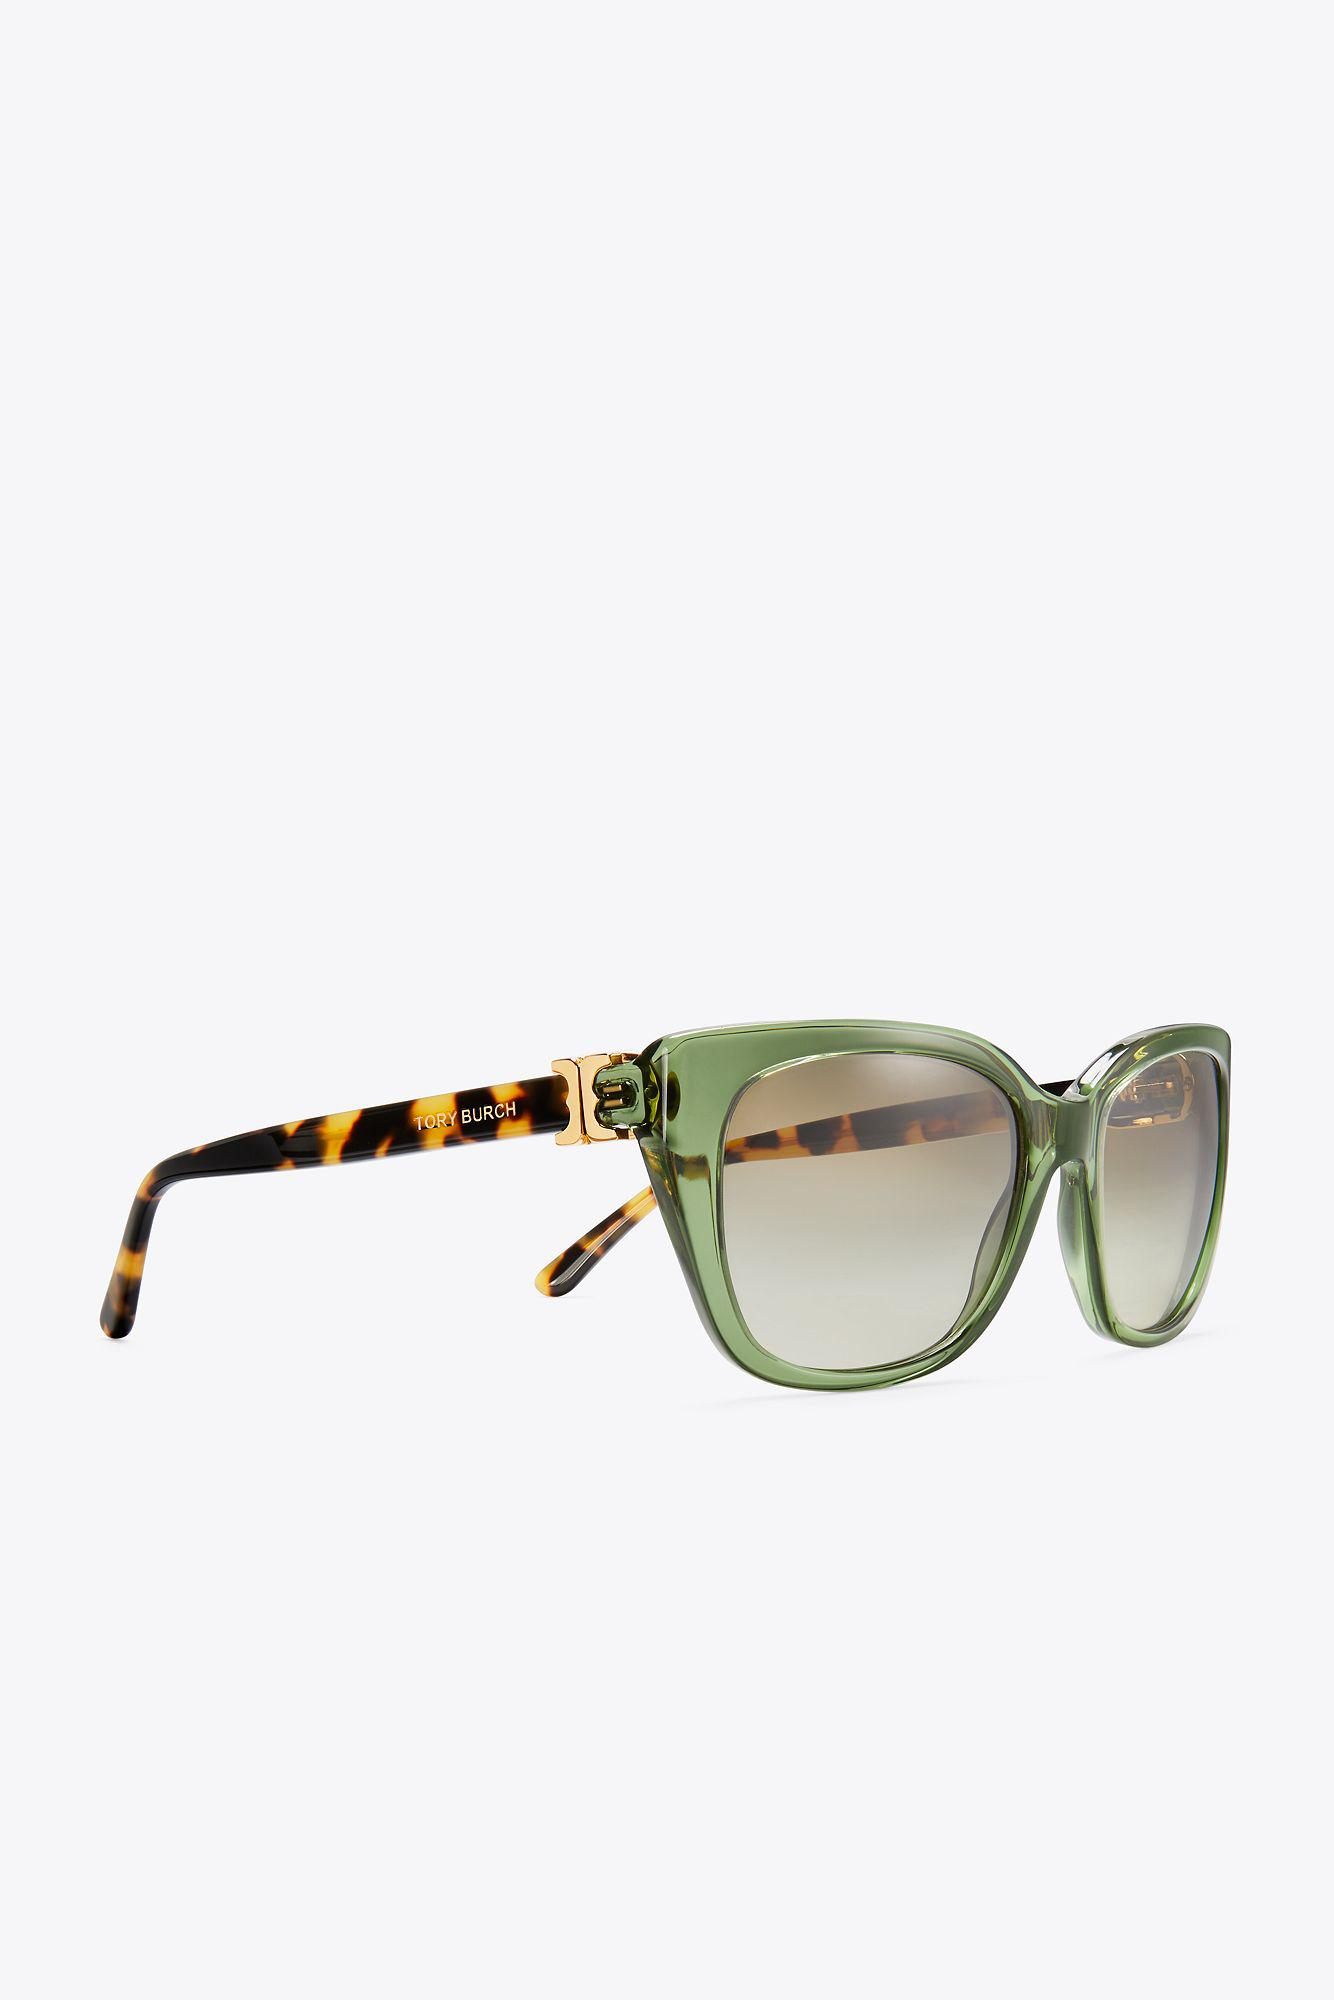 73b170ca6db1 Tory Burch Gemini Link Sunglasses in Green - Lyst